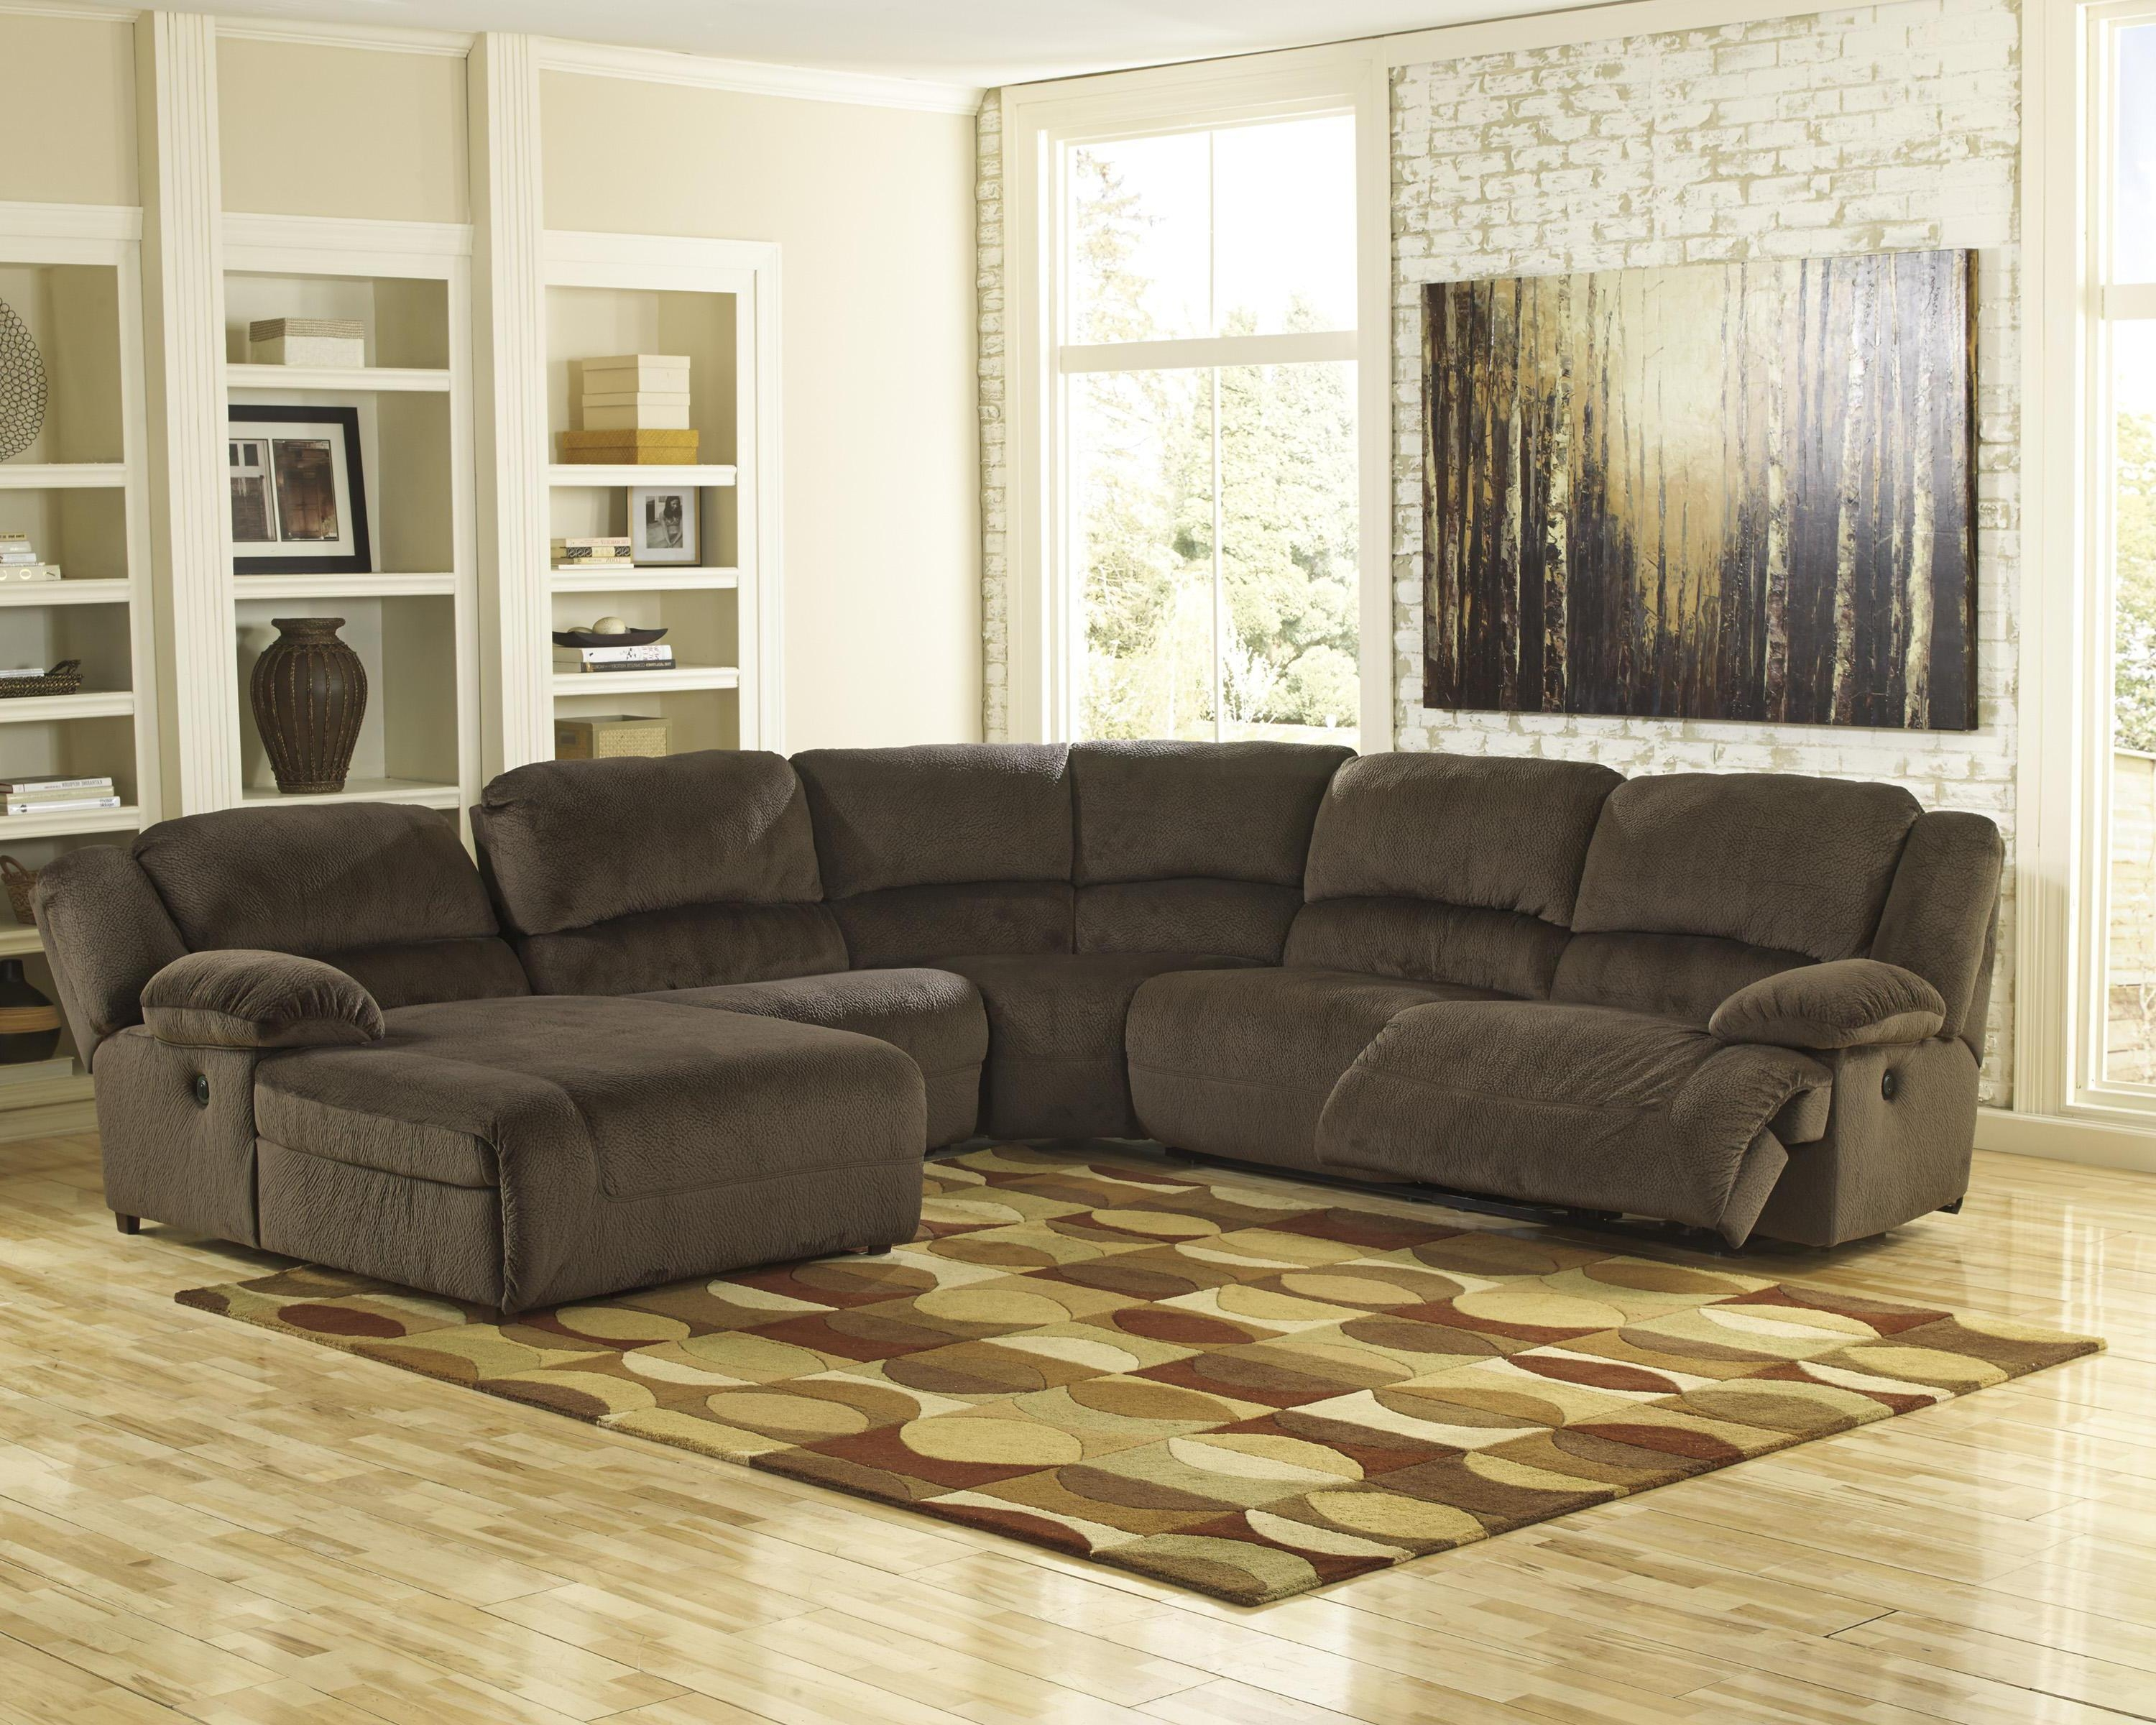 Shop Sectionals | Wolf And Gardiner Wolf Furniture With Regard To Signature Design Sectional Sofas (View 14 of 20)